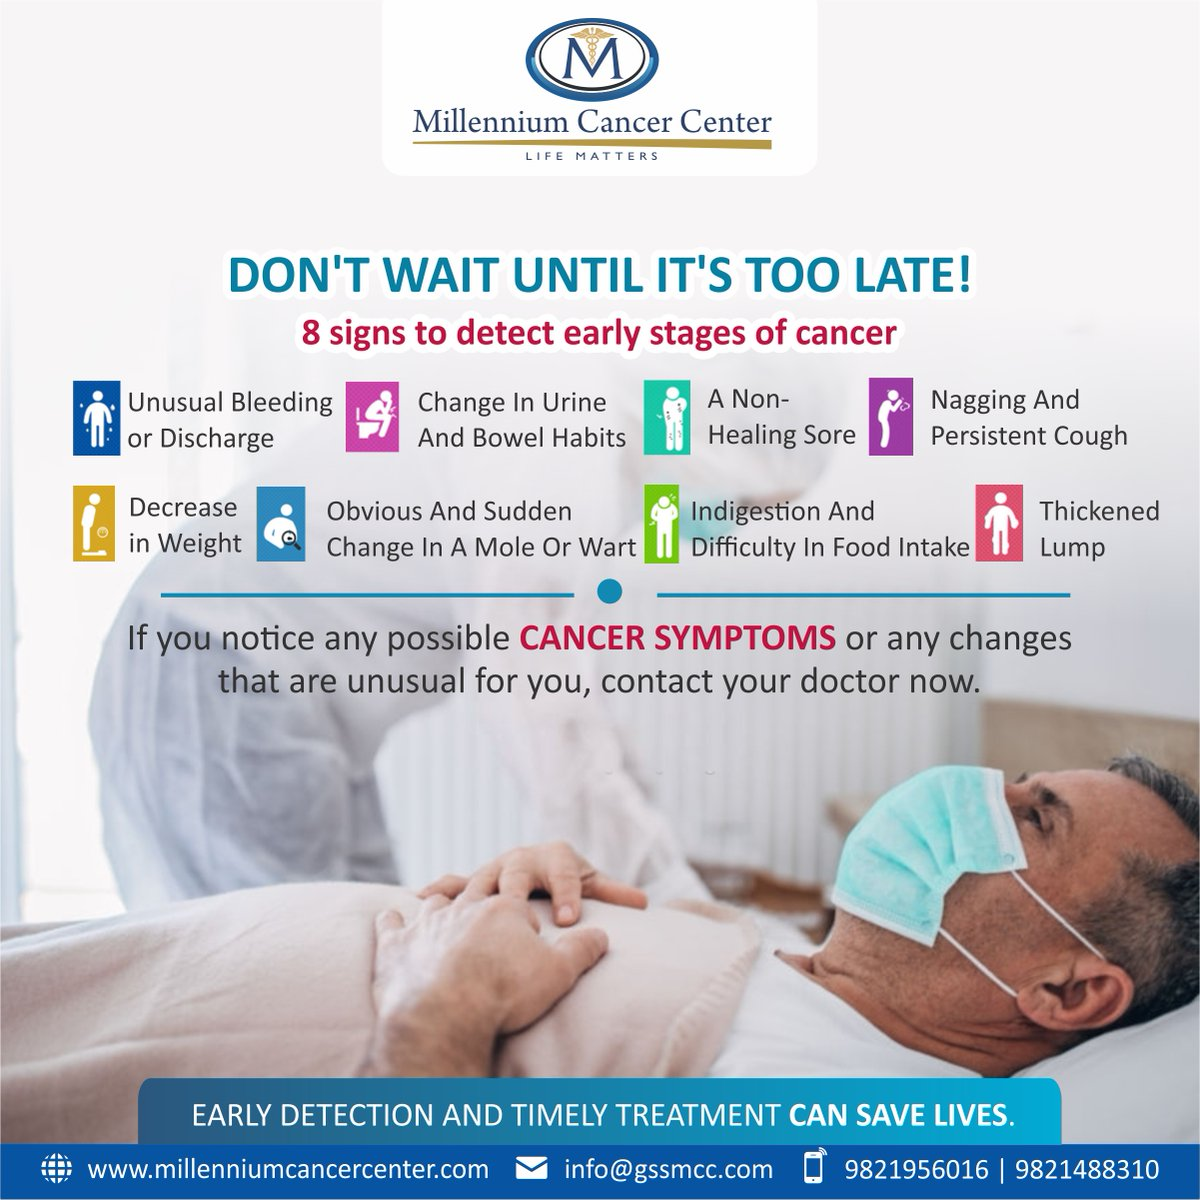 Don't wait until it's too late! If you are experiencing any of these #cancersymptoms, please see a specialist to schedule an examination and screening. We are here to help you get the #cancer information you need.   #MillenniumCancerCenter #CancerScreening #Oncologistpic.twitter.com/QEWAwXAfqE